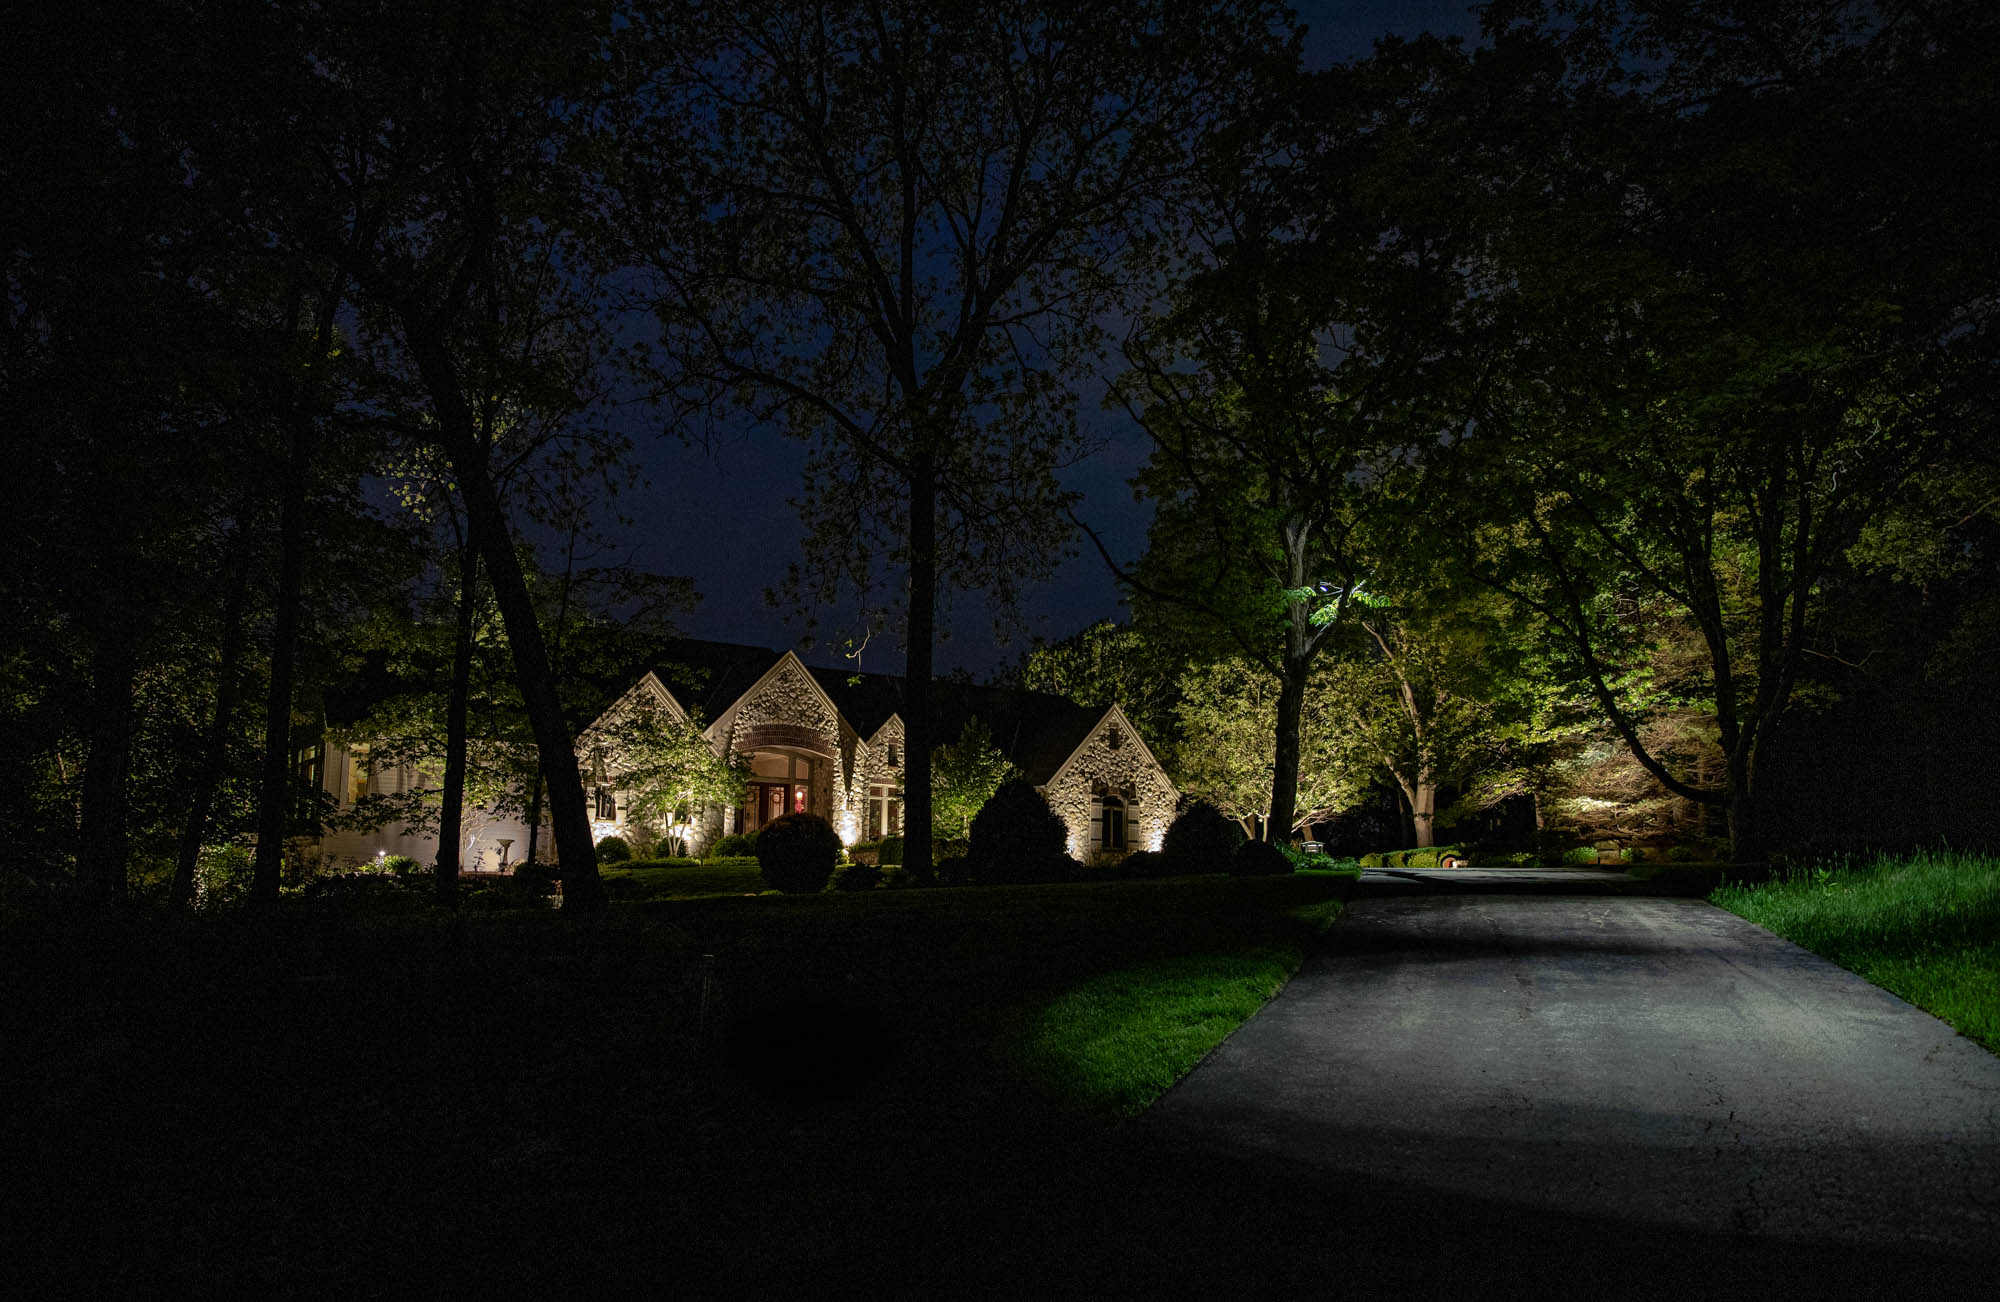 delafield landscape outdoor lighting night owl driveway moonlighting home entrance security lights